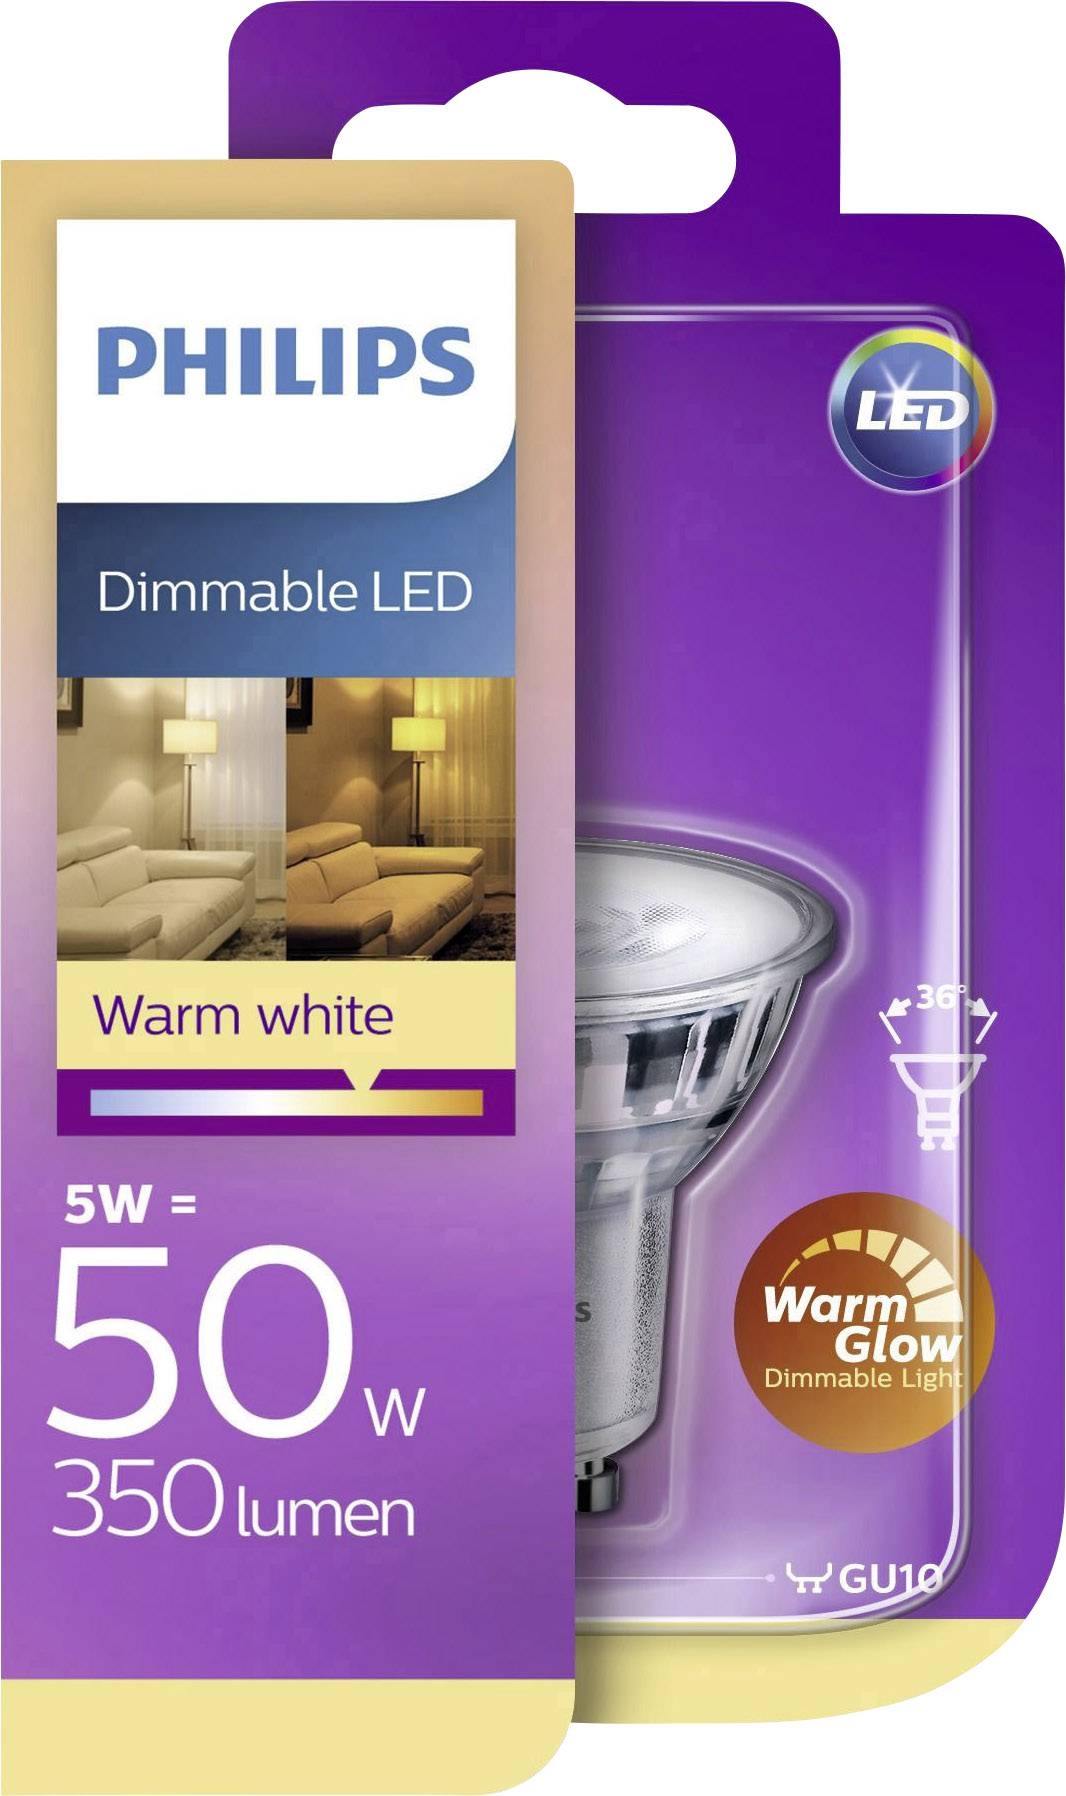 Led Gu10 5w Philips Lighting Led Energielabel A A E Gu10 Reflector 5 W 50 W Warmwit Dimbaar Warmglow 1 Stuks